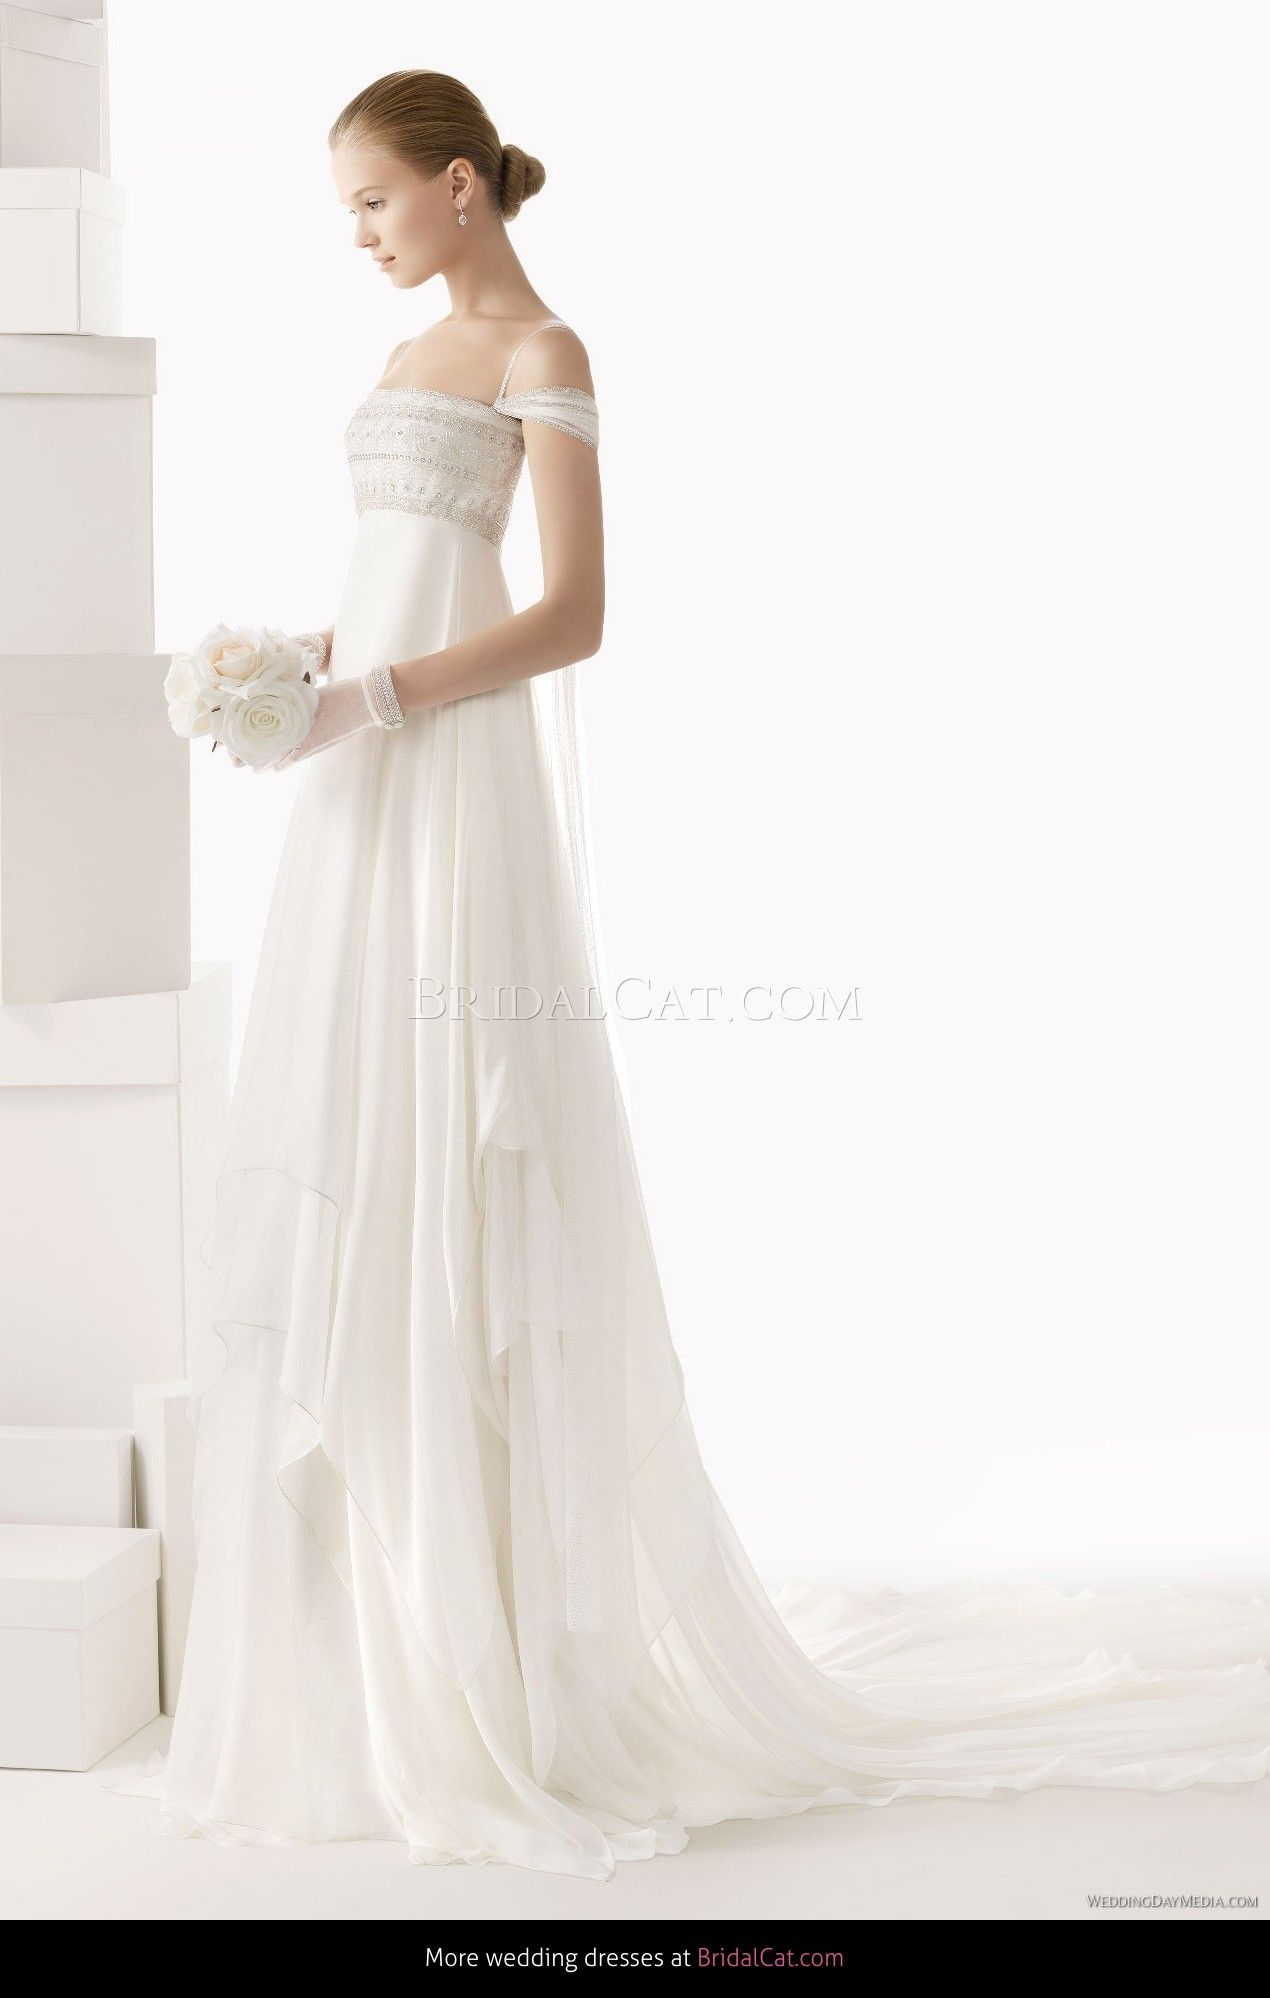 Abito da sposa Rosa Clara 157 Celia 2014 - TuoAbito.it | Wedding ...